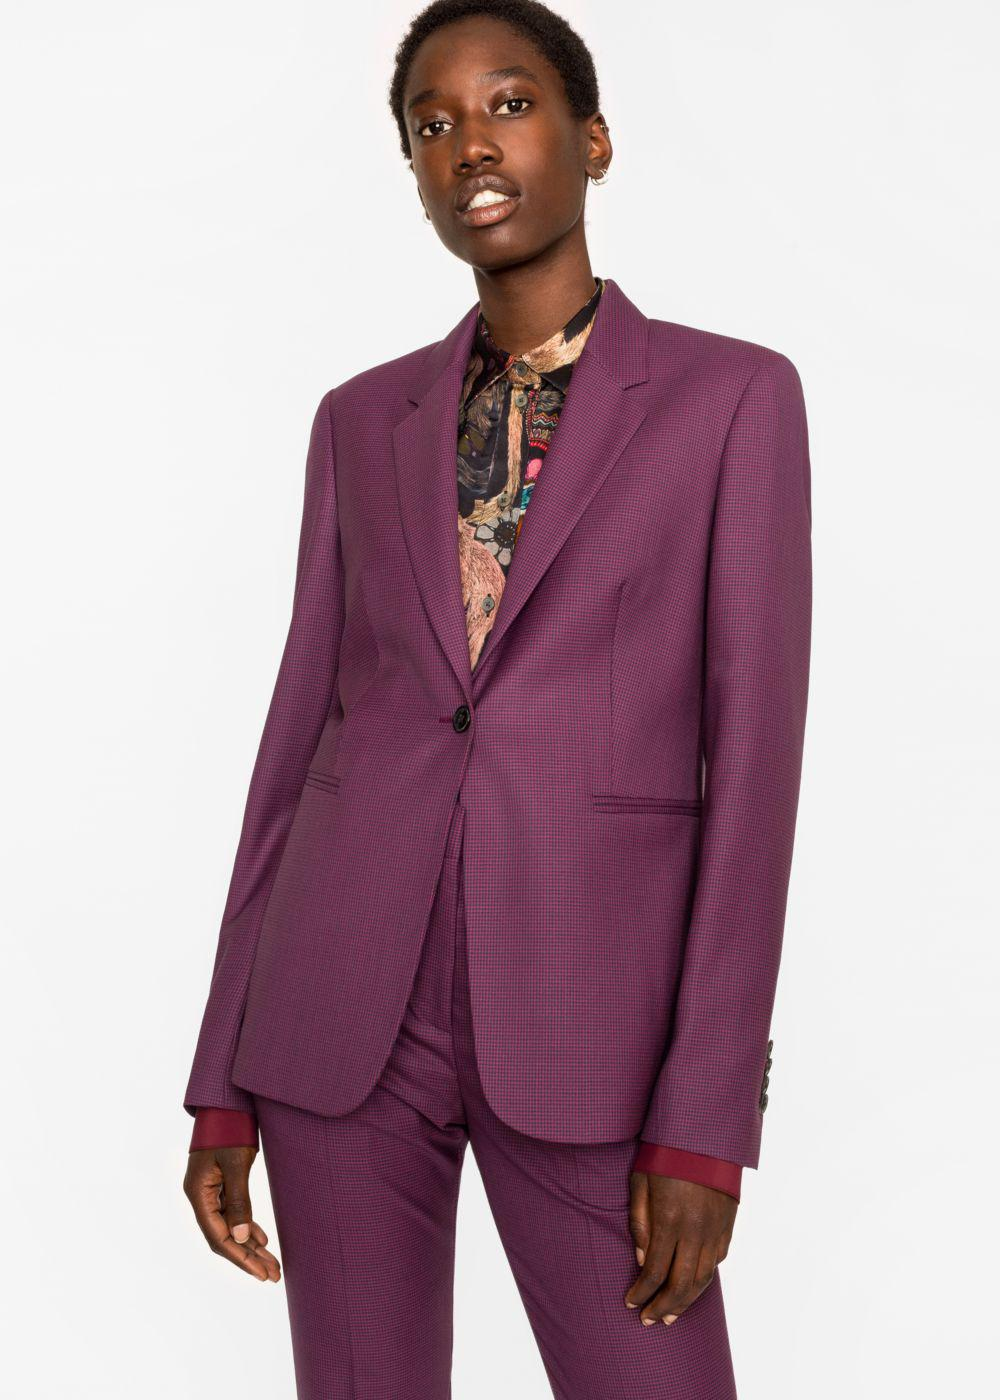 Lyst Paul Smith A Suit To Travel In Women S Burgundy Puppytooth